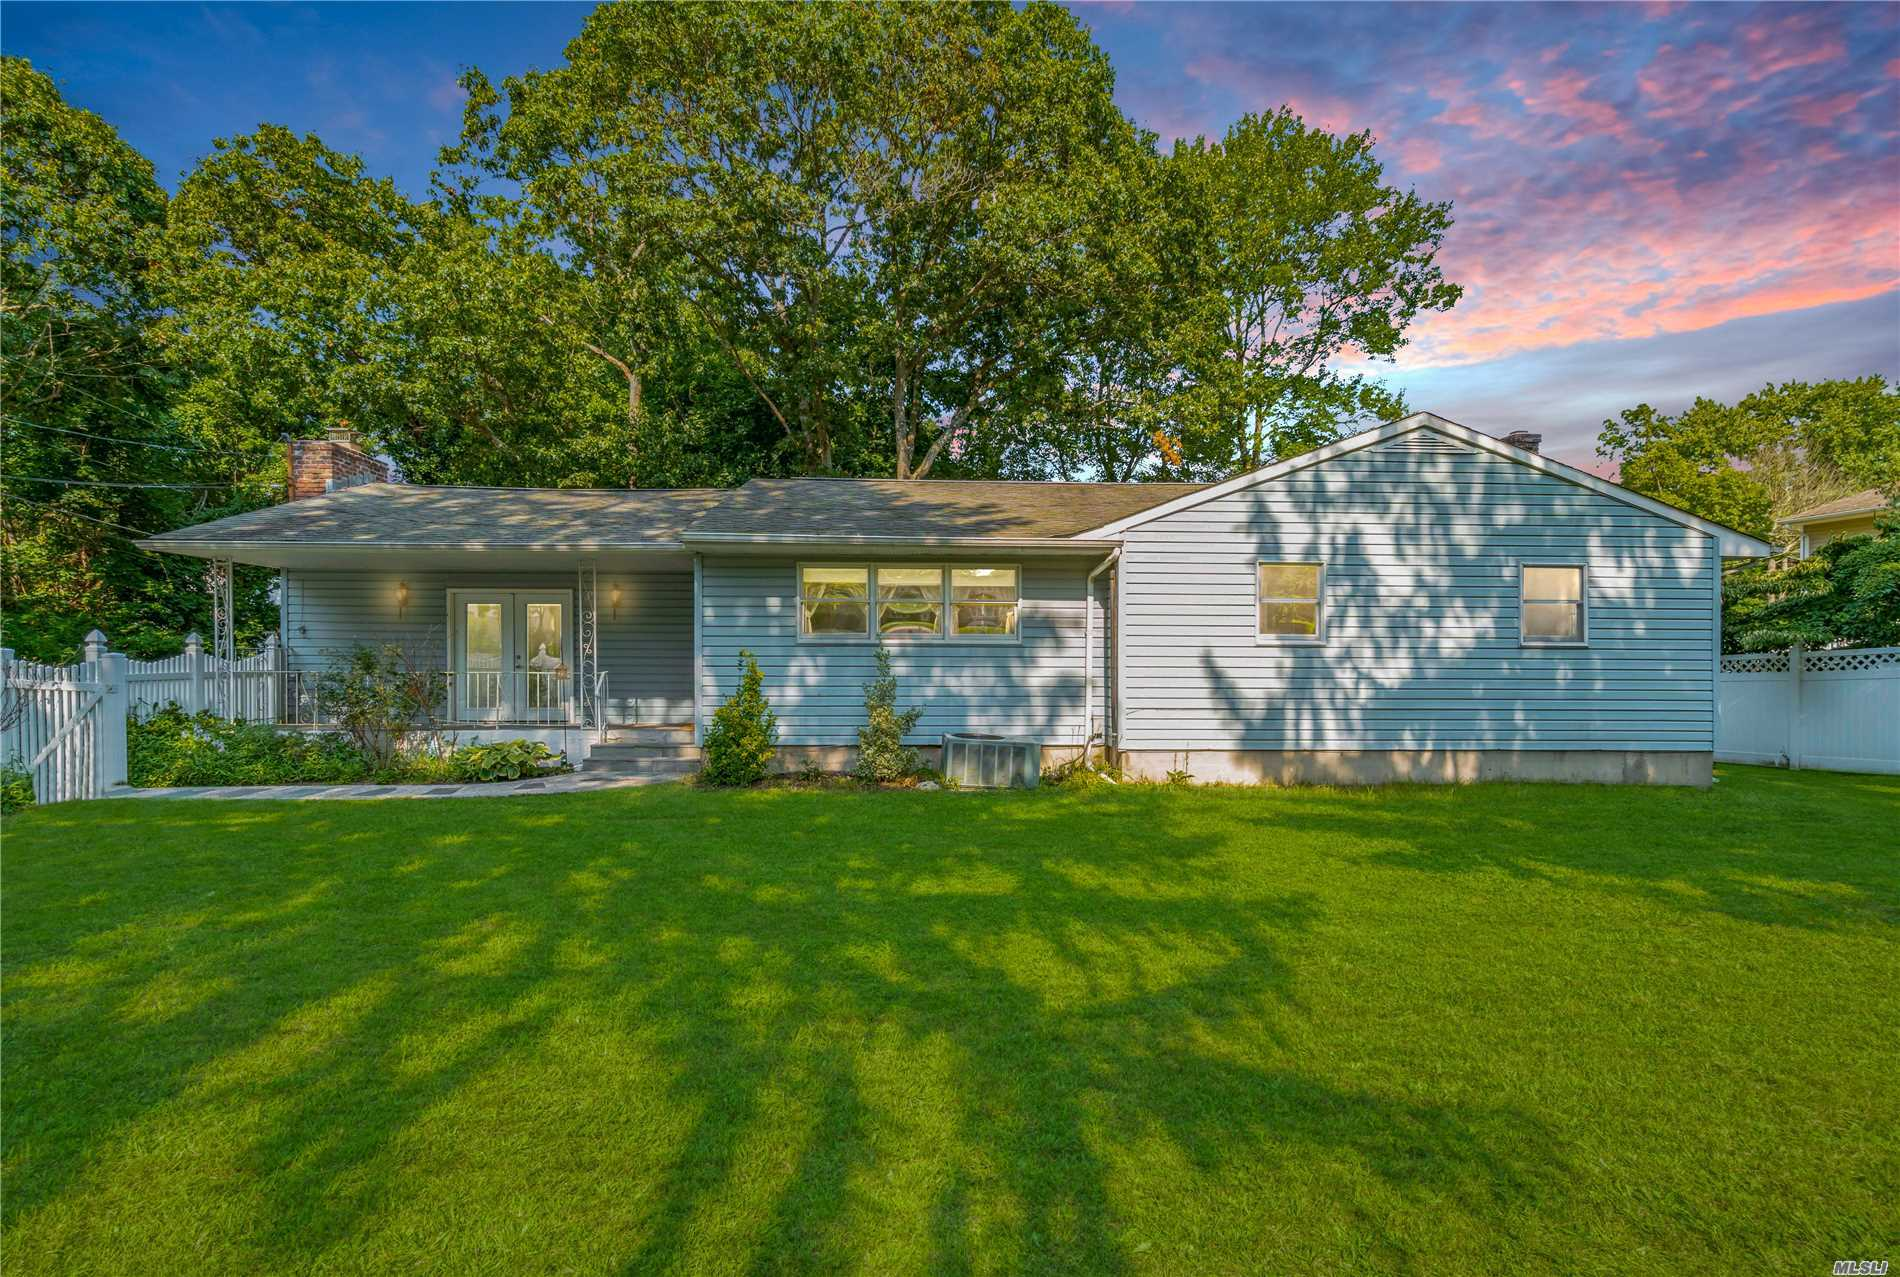 Beautiful 3 Bedroom Ranch With A Chef's Dream Kitchen. Large Den With Fireplace And Gorgeous Vaulted Ceiling. This House Boasts Central Air, Newly Redone Floors And A Huge Basement For Storage Or Conversion. Great Condition.